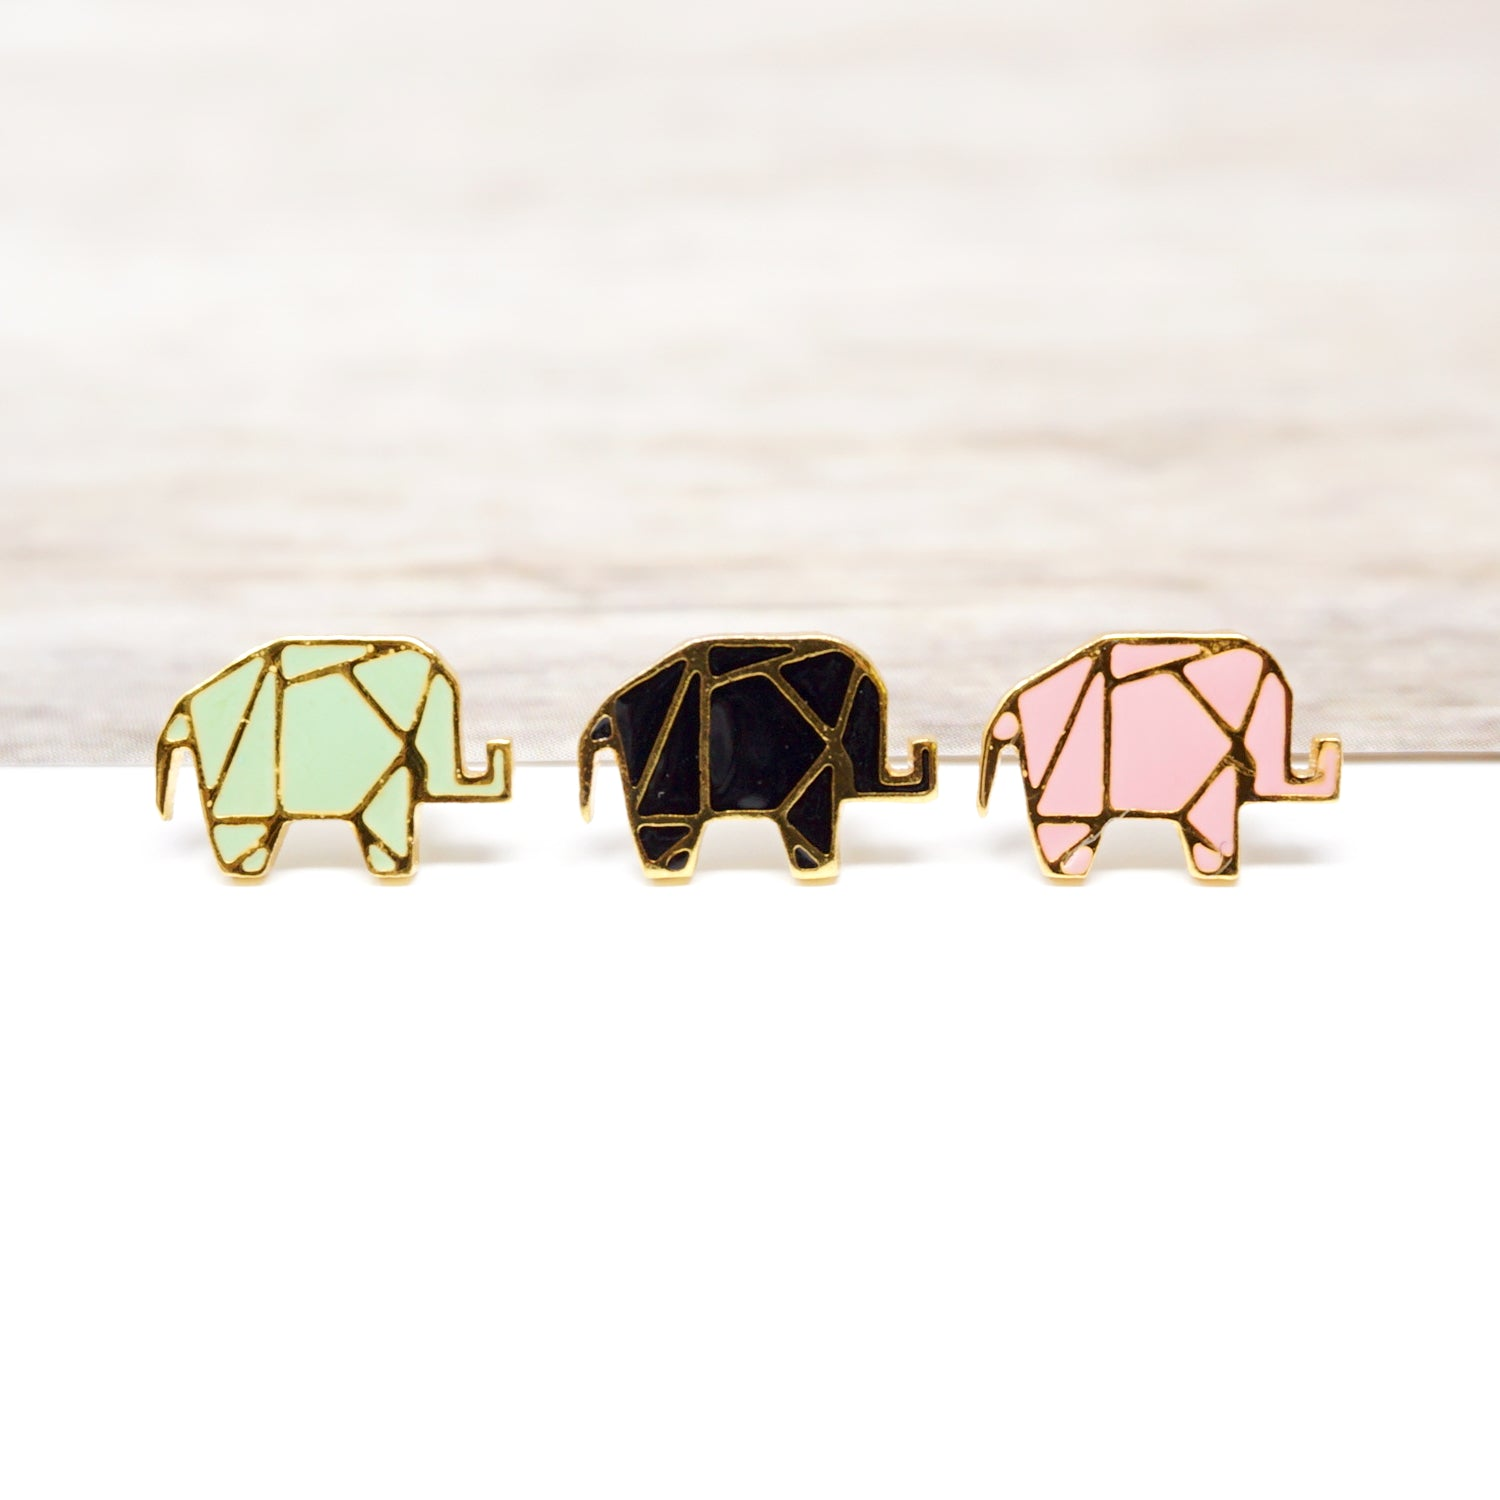 NEW! Origami Elephant Enamel Stud Earrings